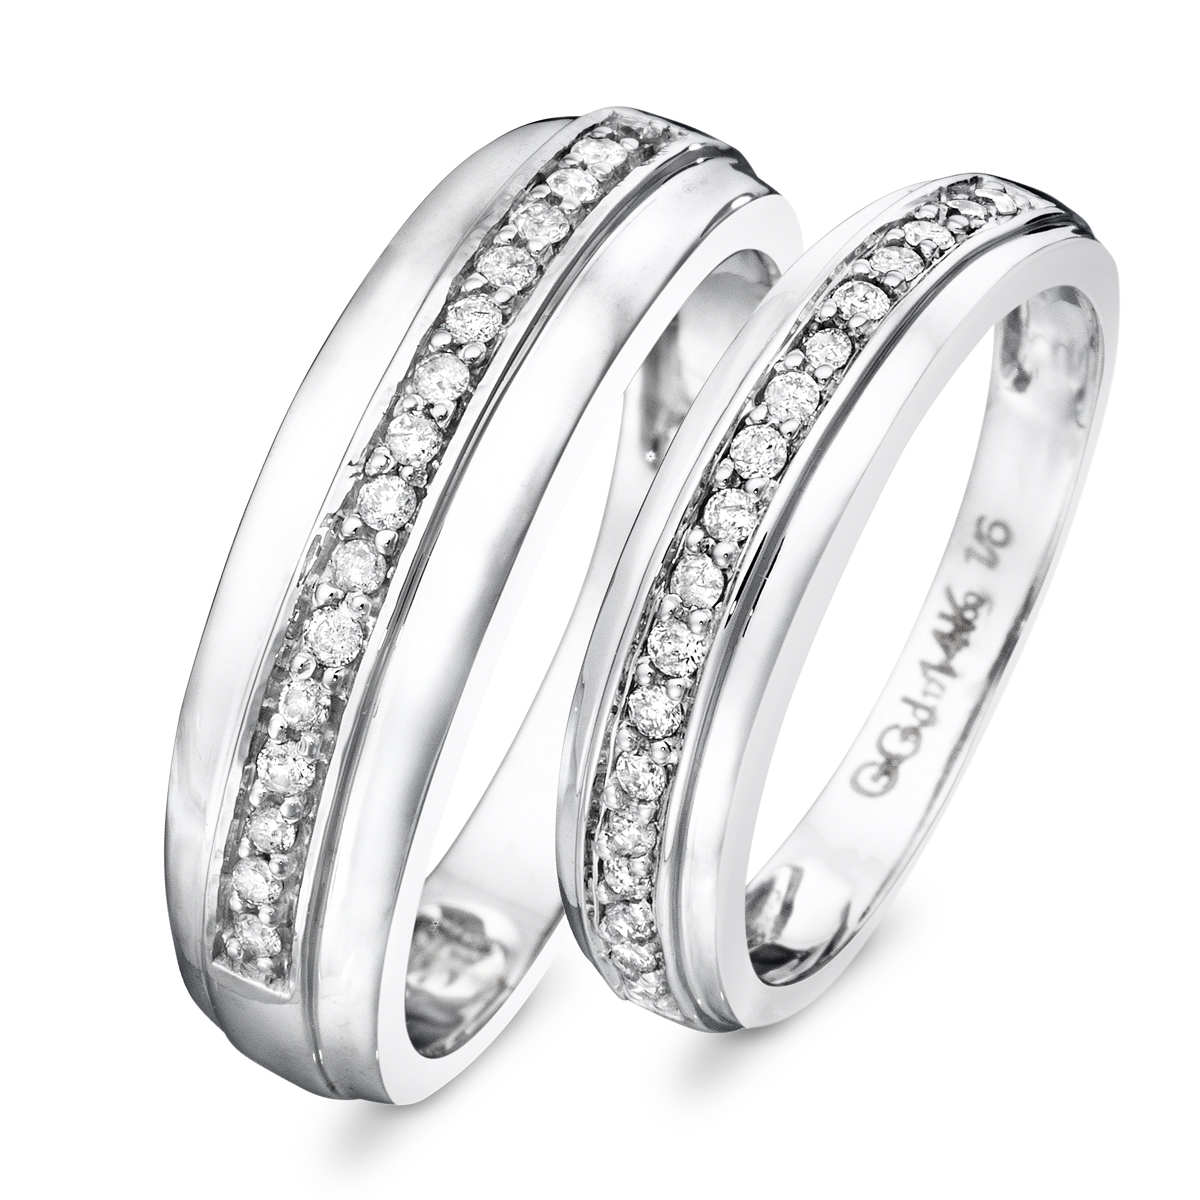 platinum wedding bands wedding rings his hers sets